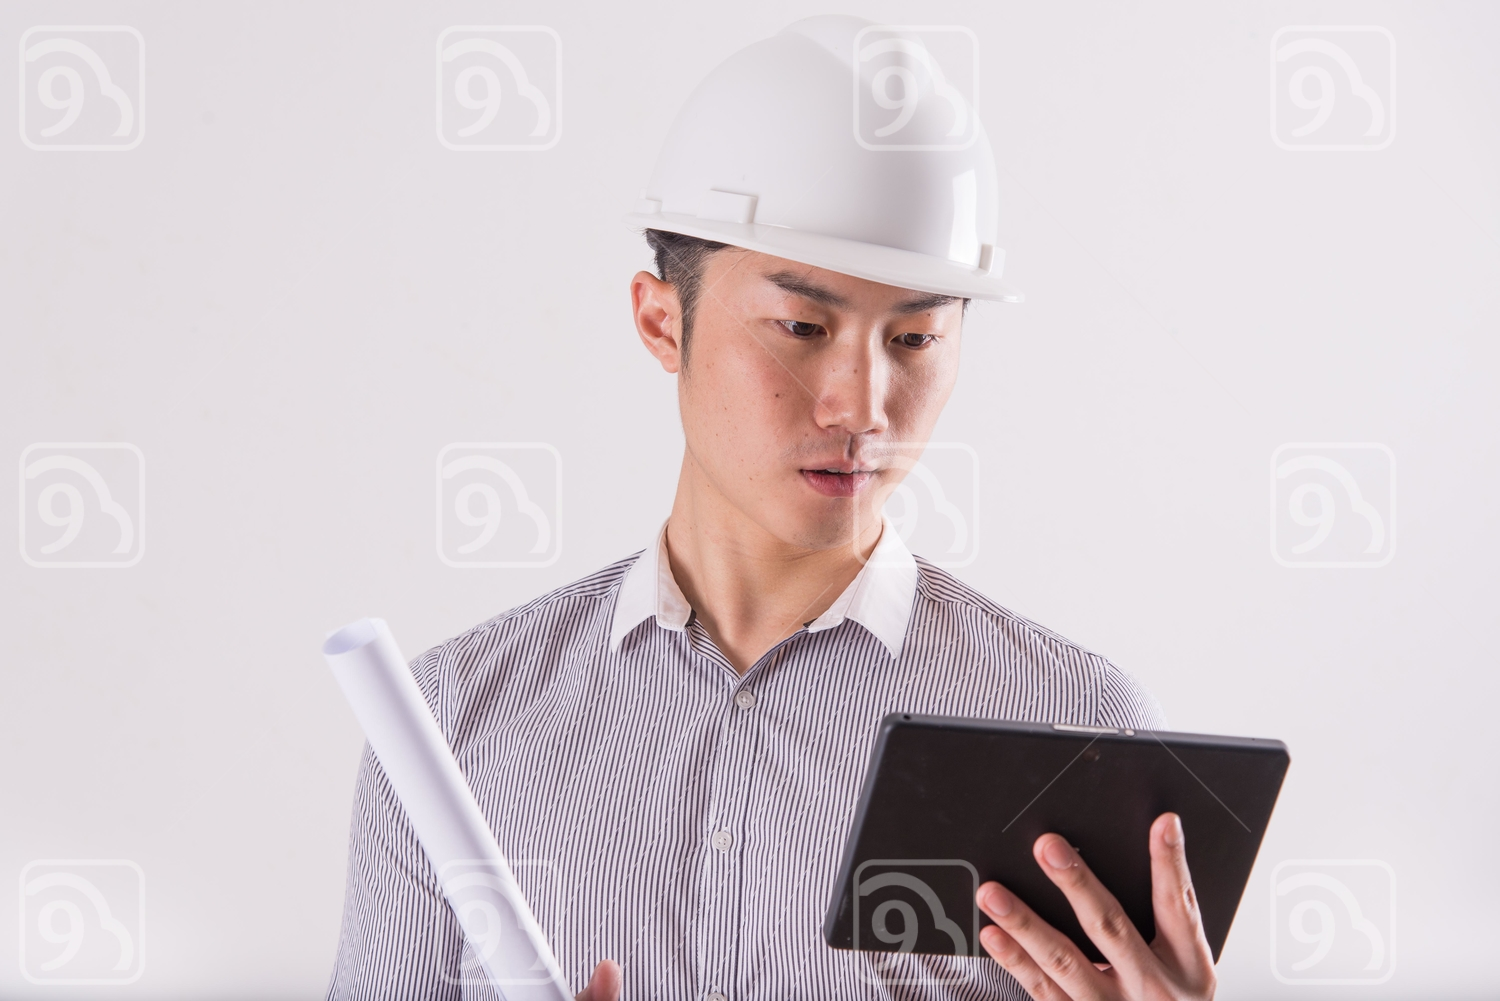 Working as an Architect